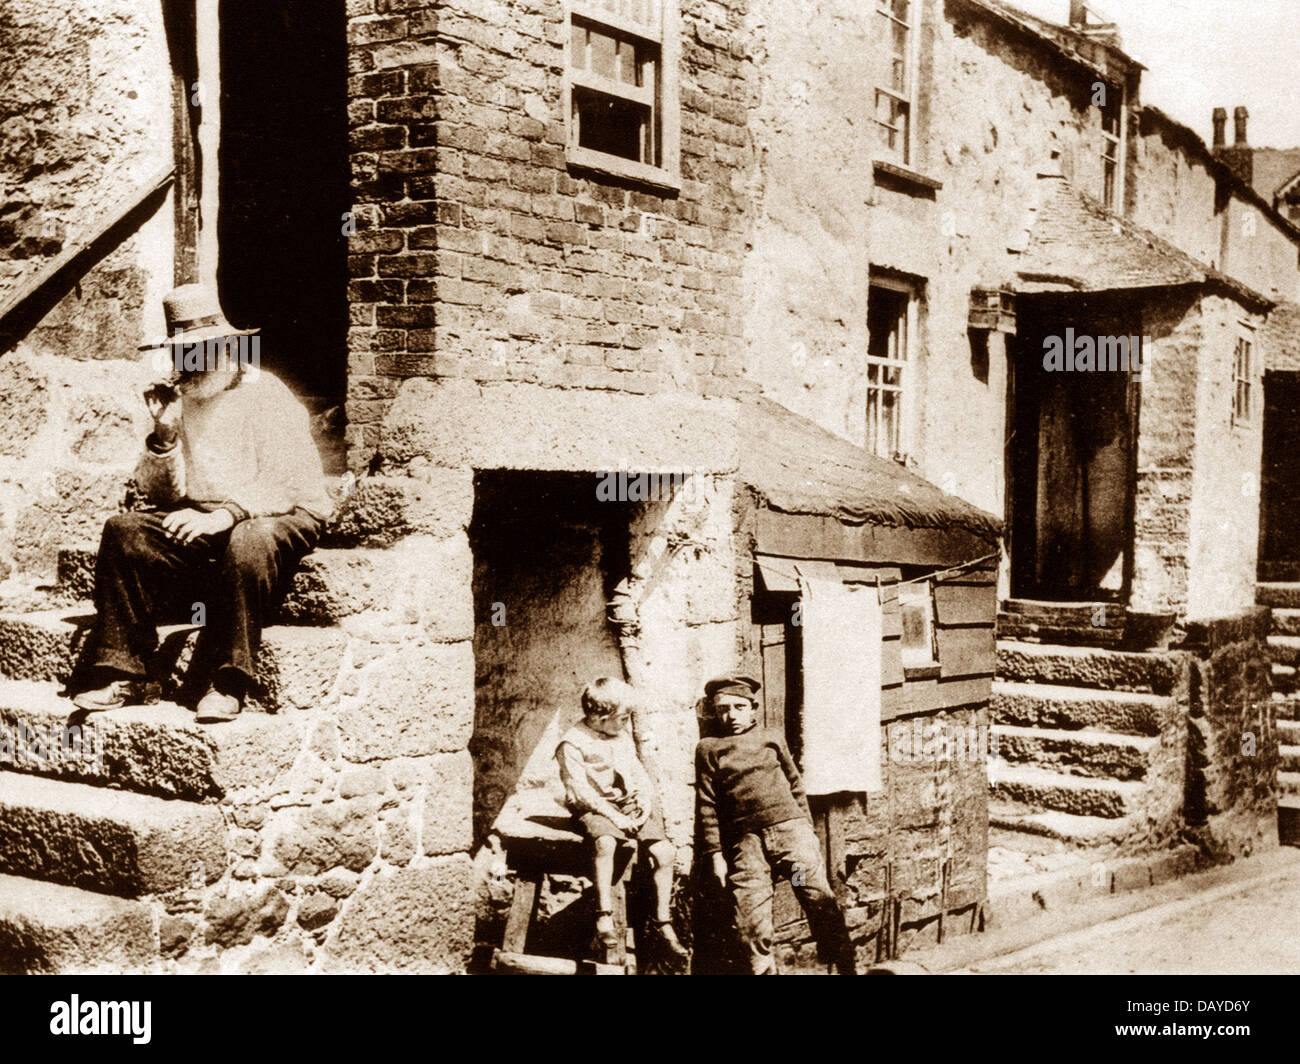 St. Ives early 1900s - Stock Image